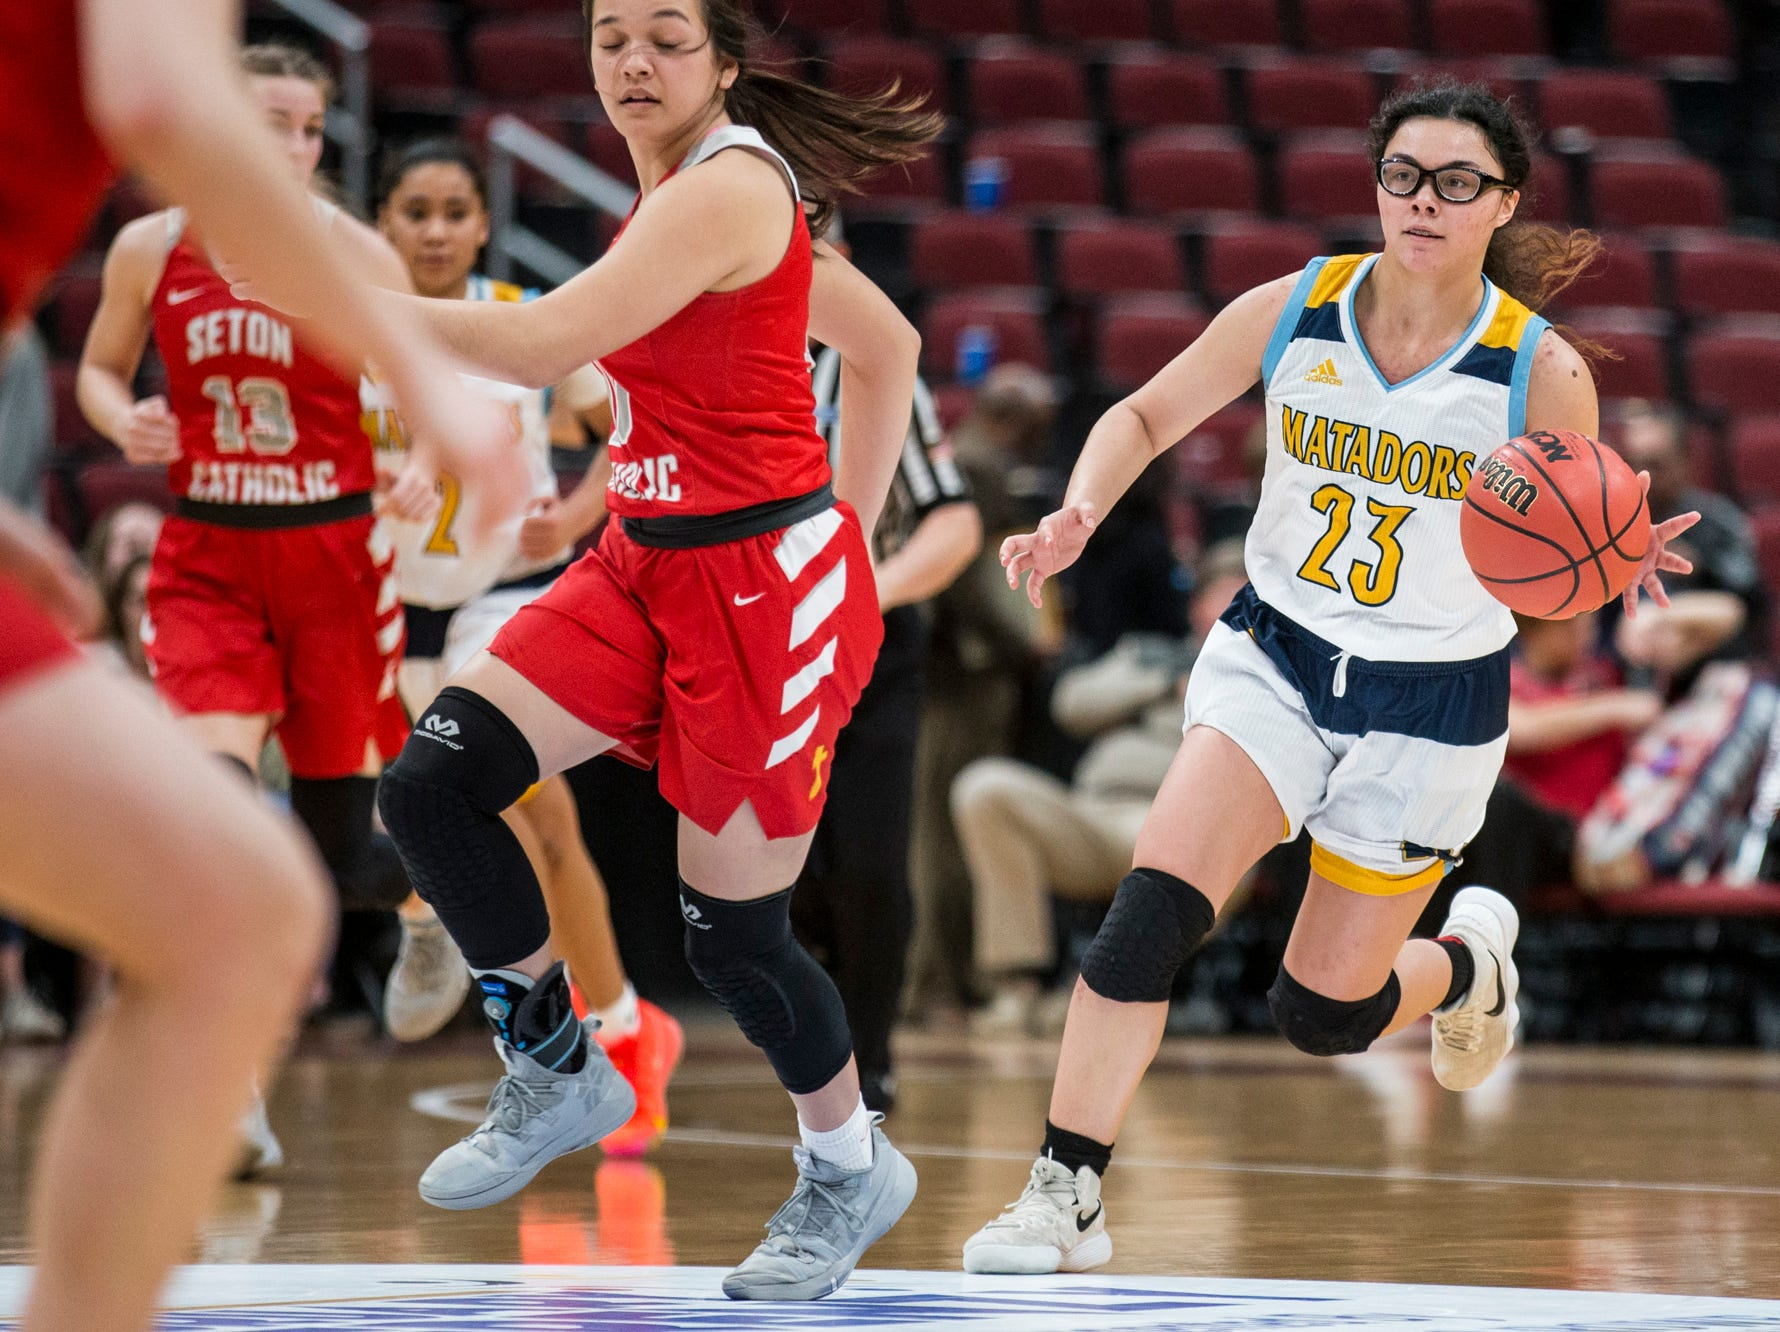 Shadow Mountain's Sissy Paloma drives downcourt against Seton Catholic during the 4A girls basketball championship on Saturday, Feb. 23, 2019, at Gila River Arena in Glendale, Ariz.